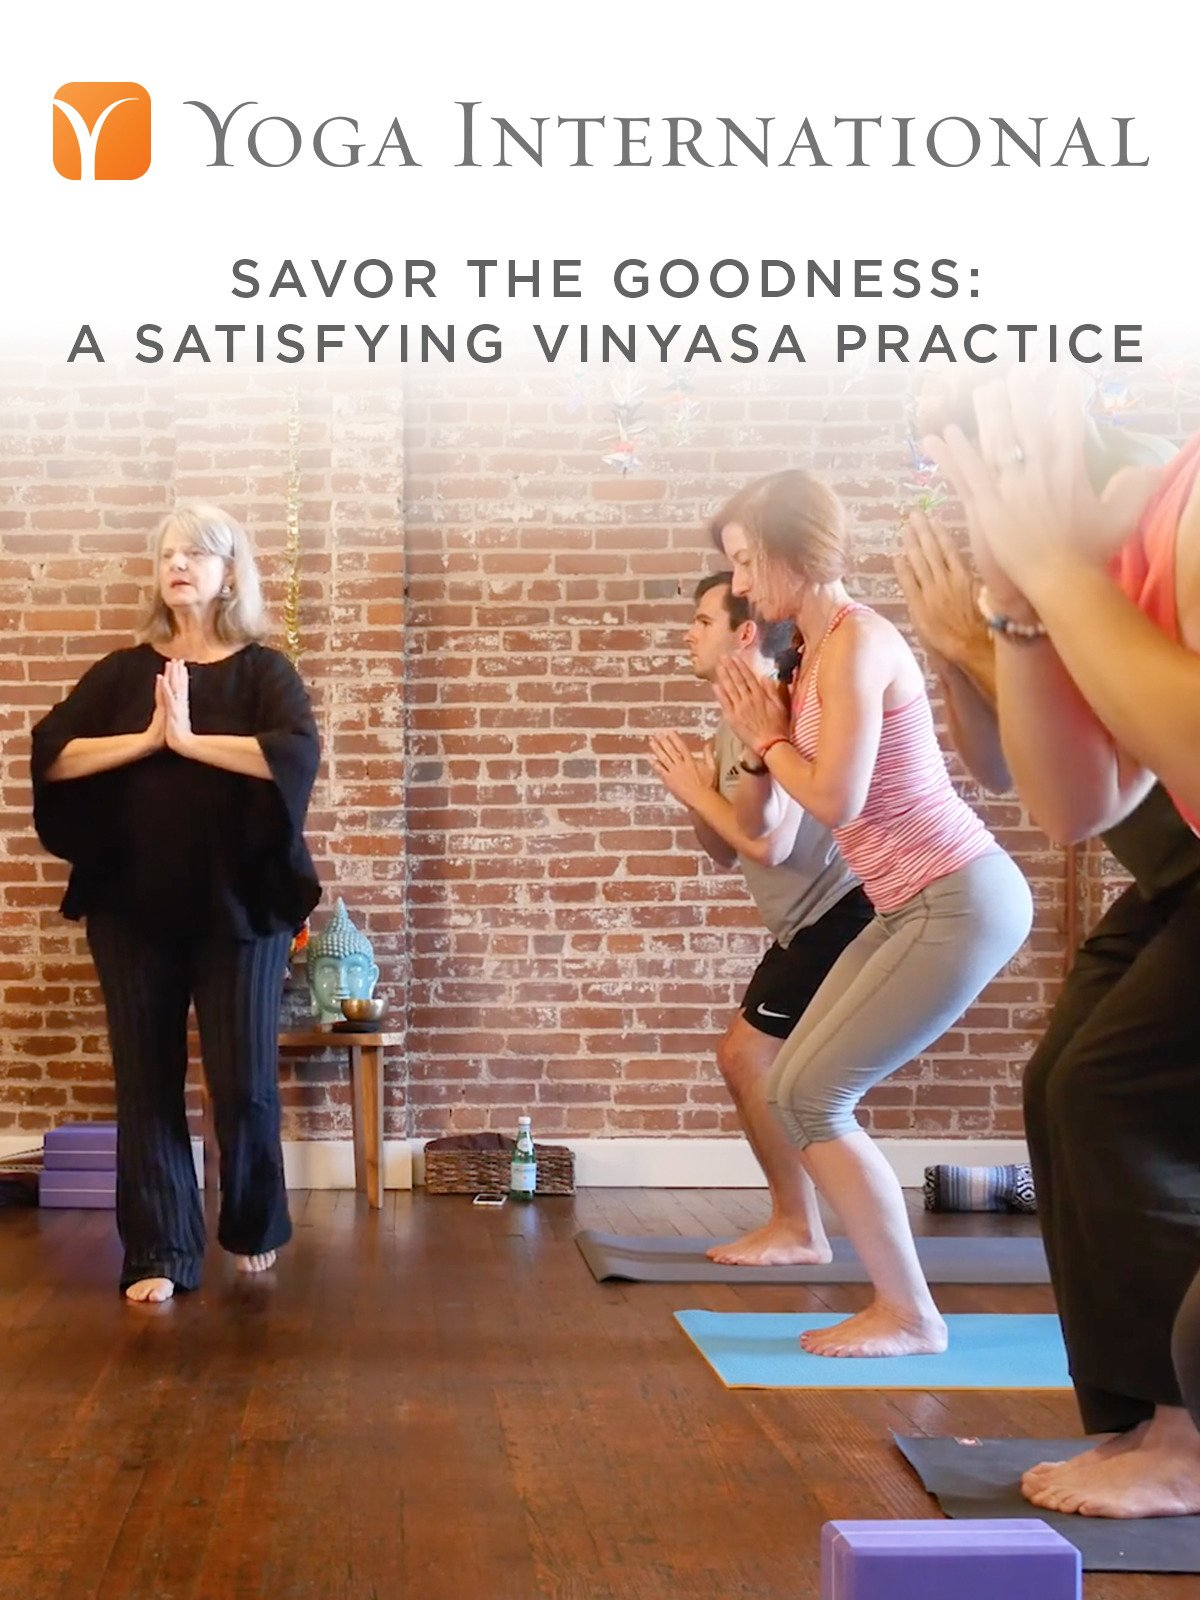 Savor the Goodness: A Satisfying Vinyasa Practice